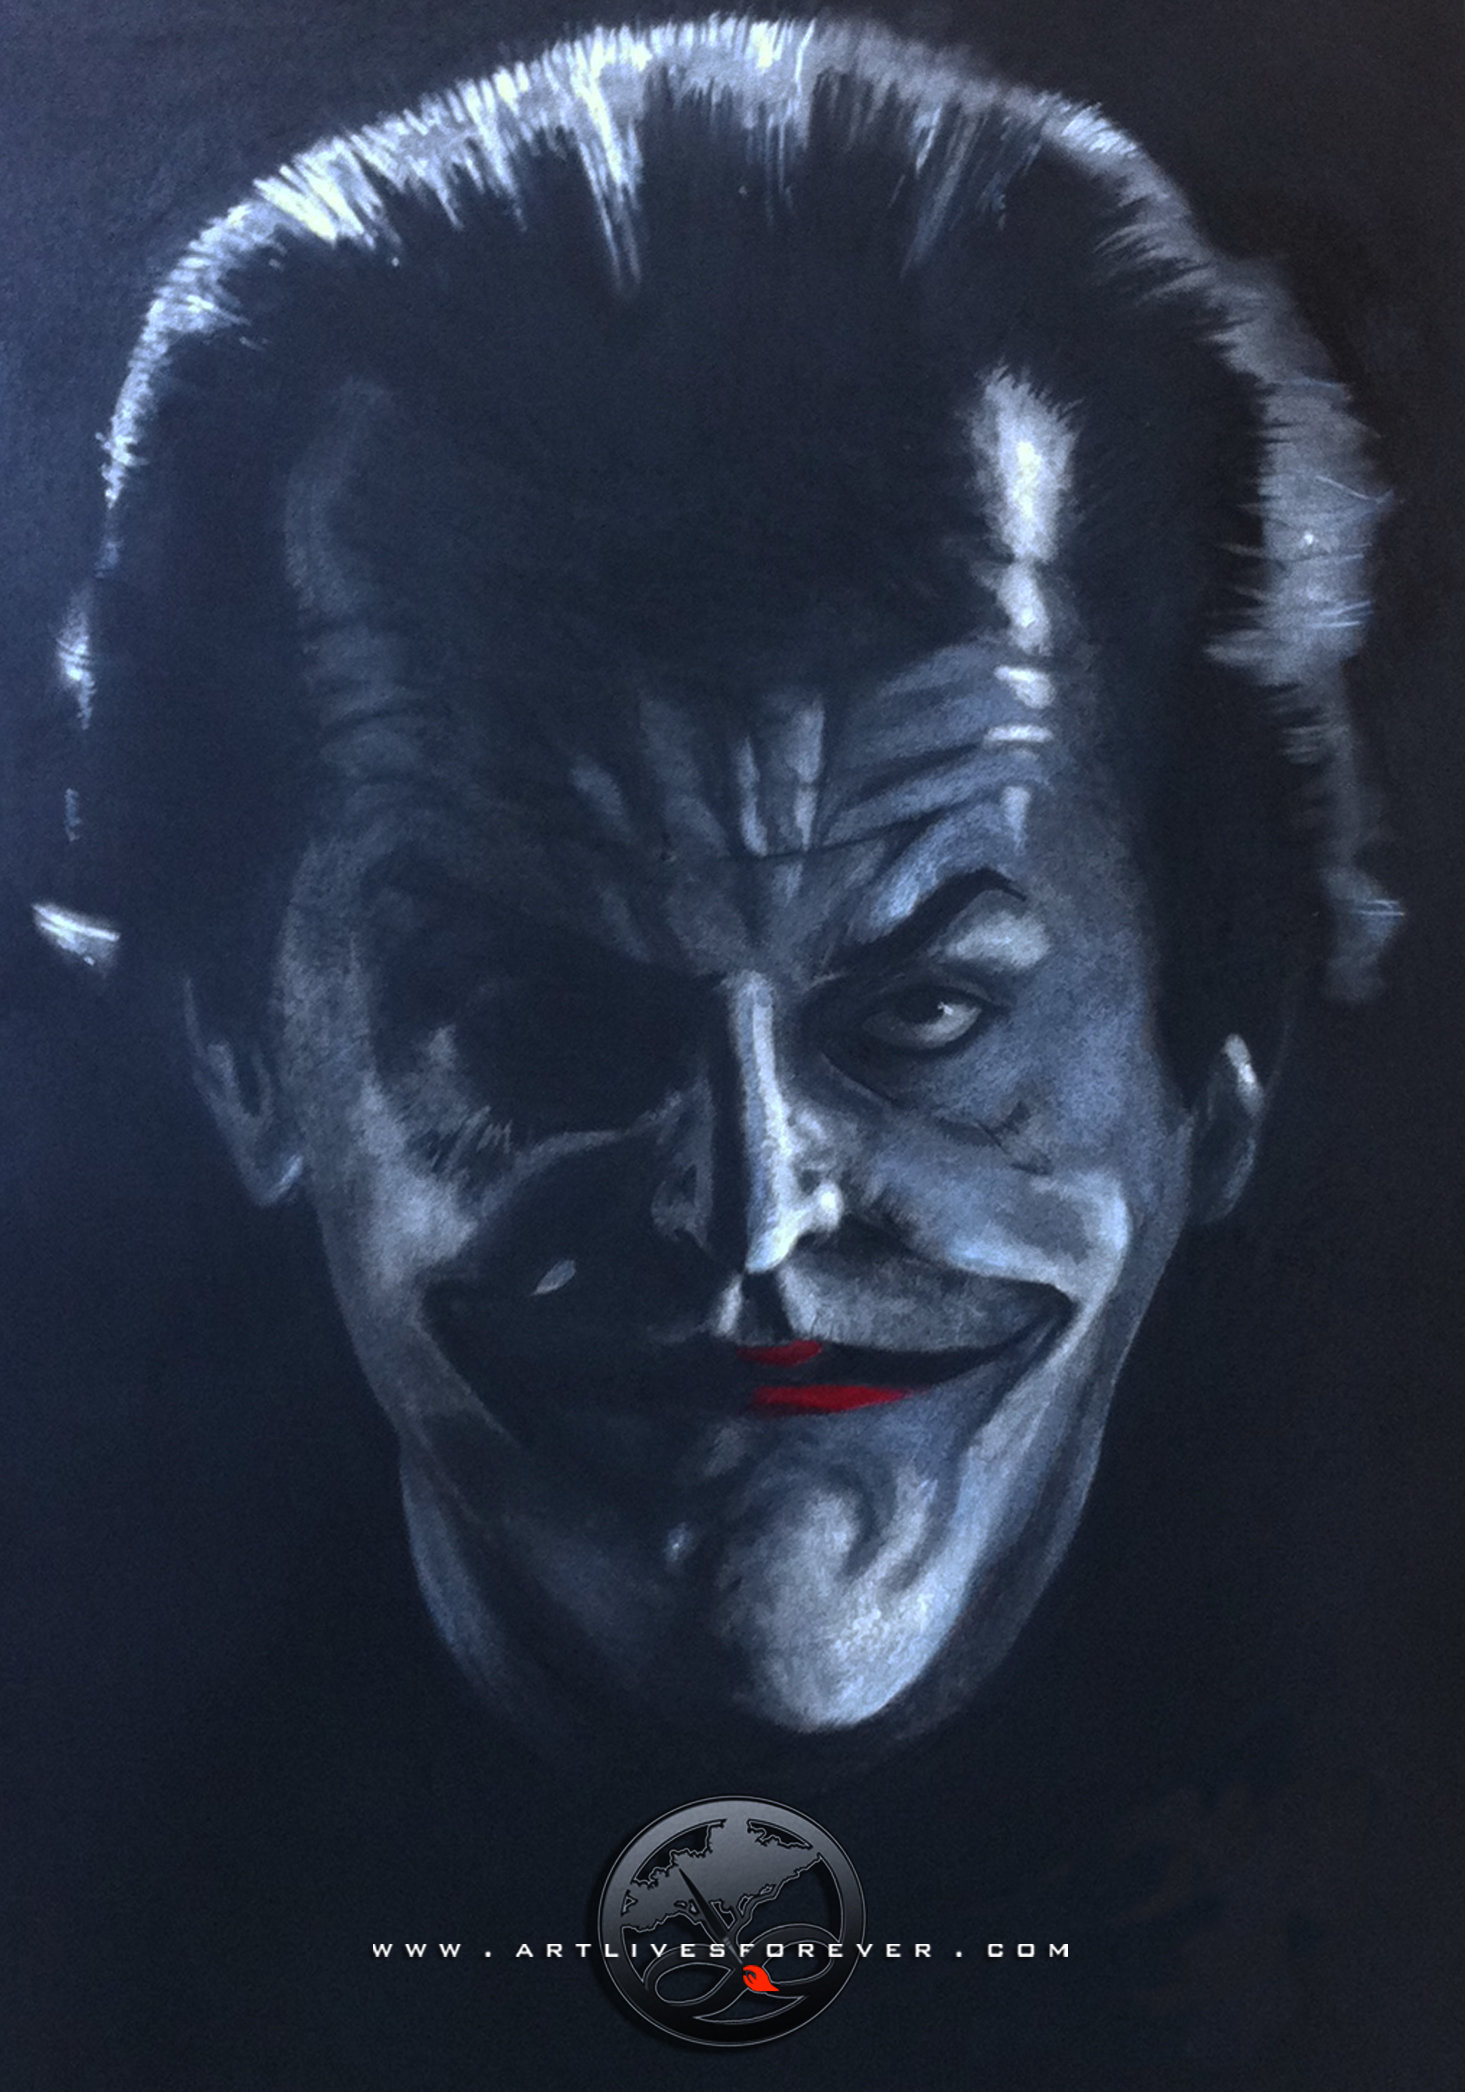 Bobby foster the jack nicholson as the joker